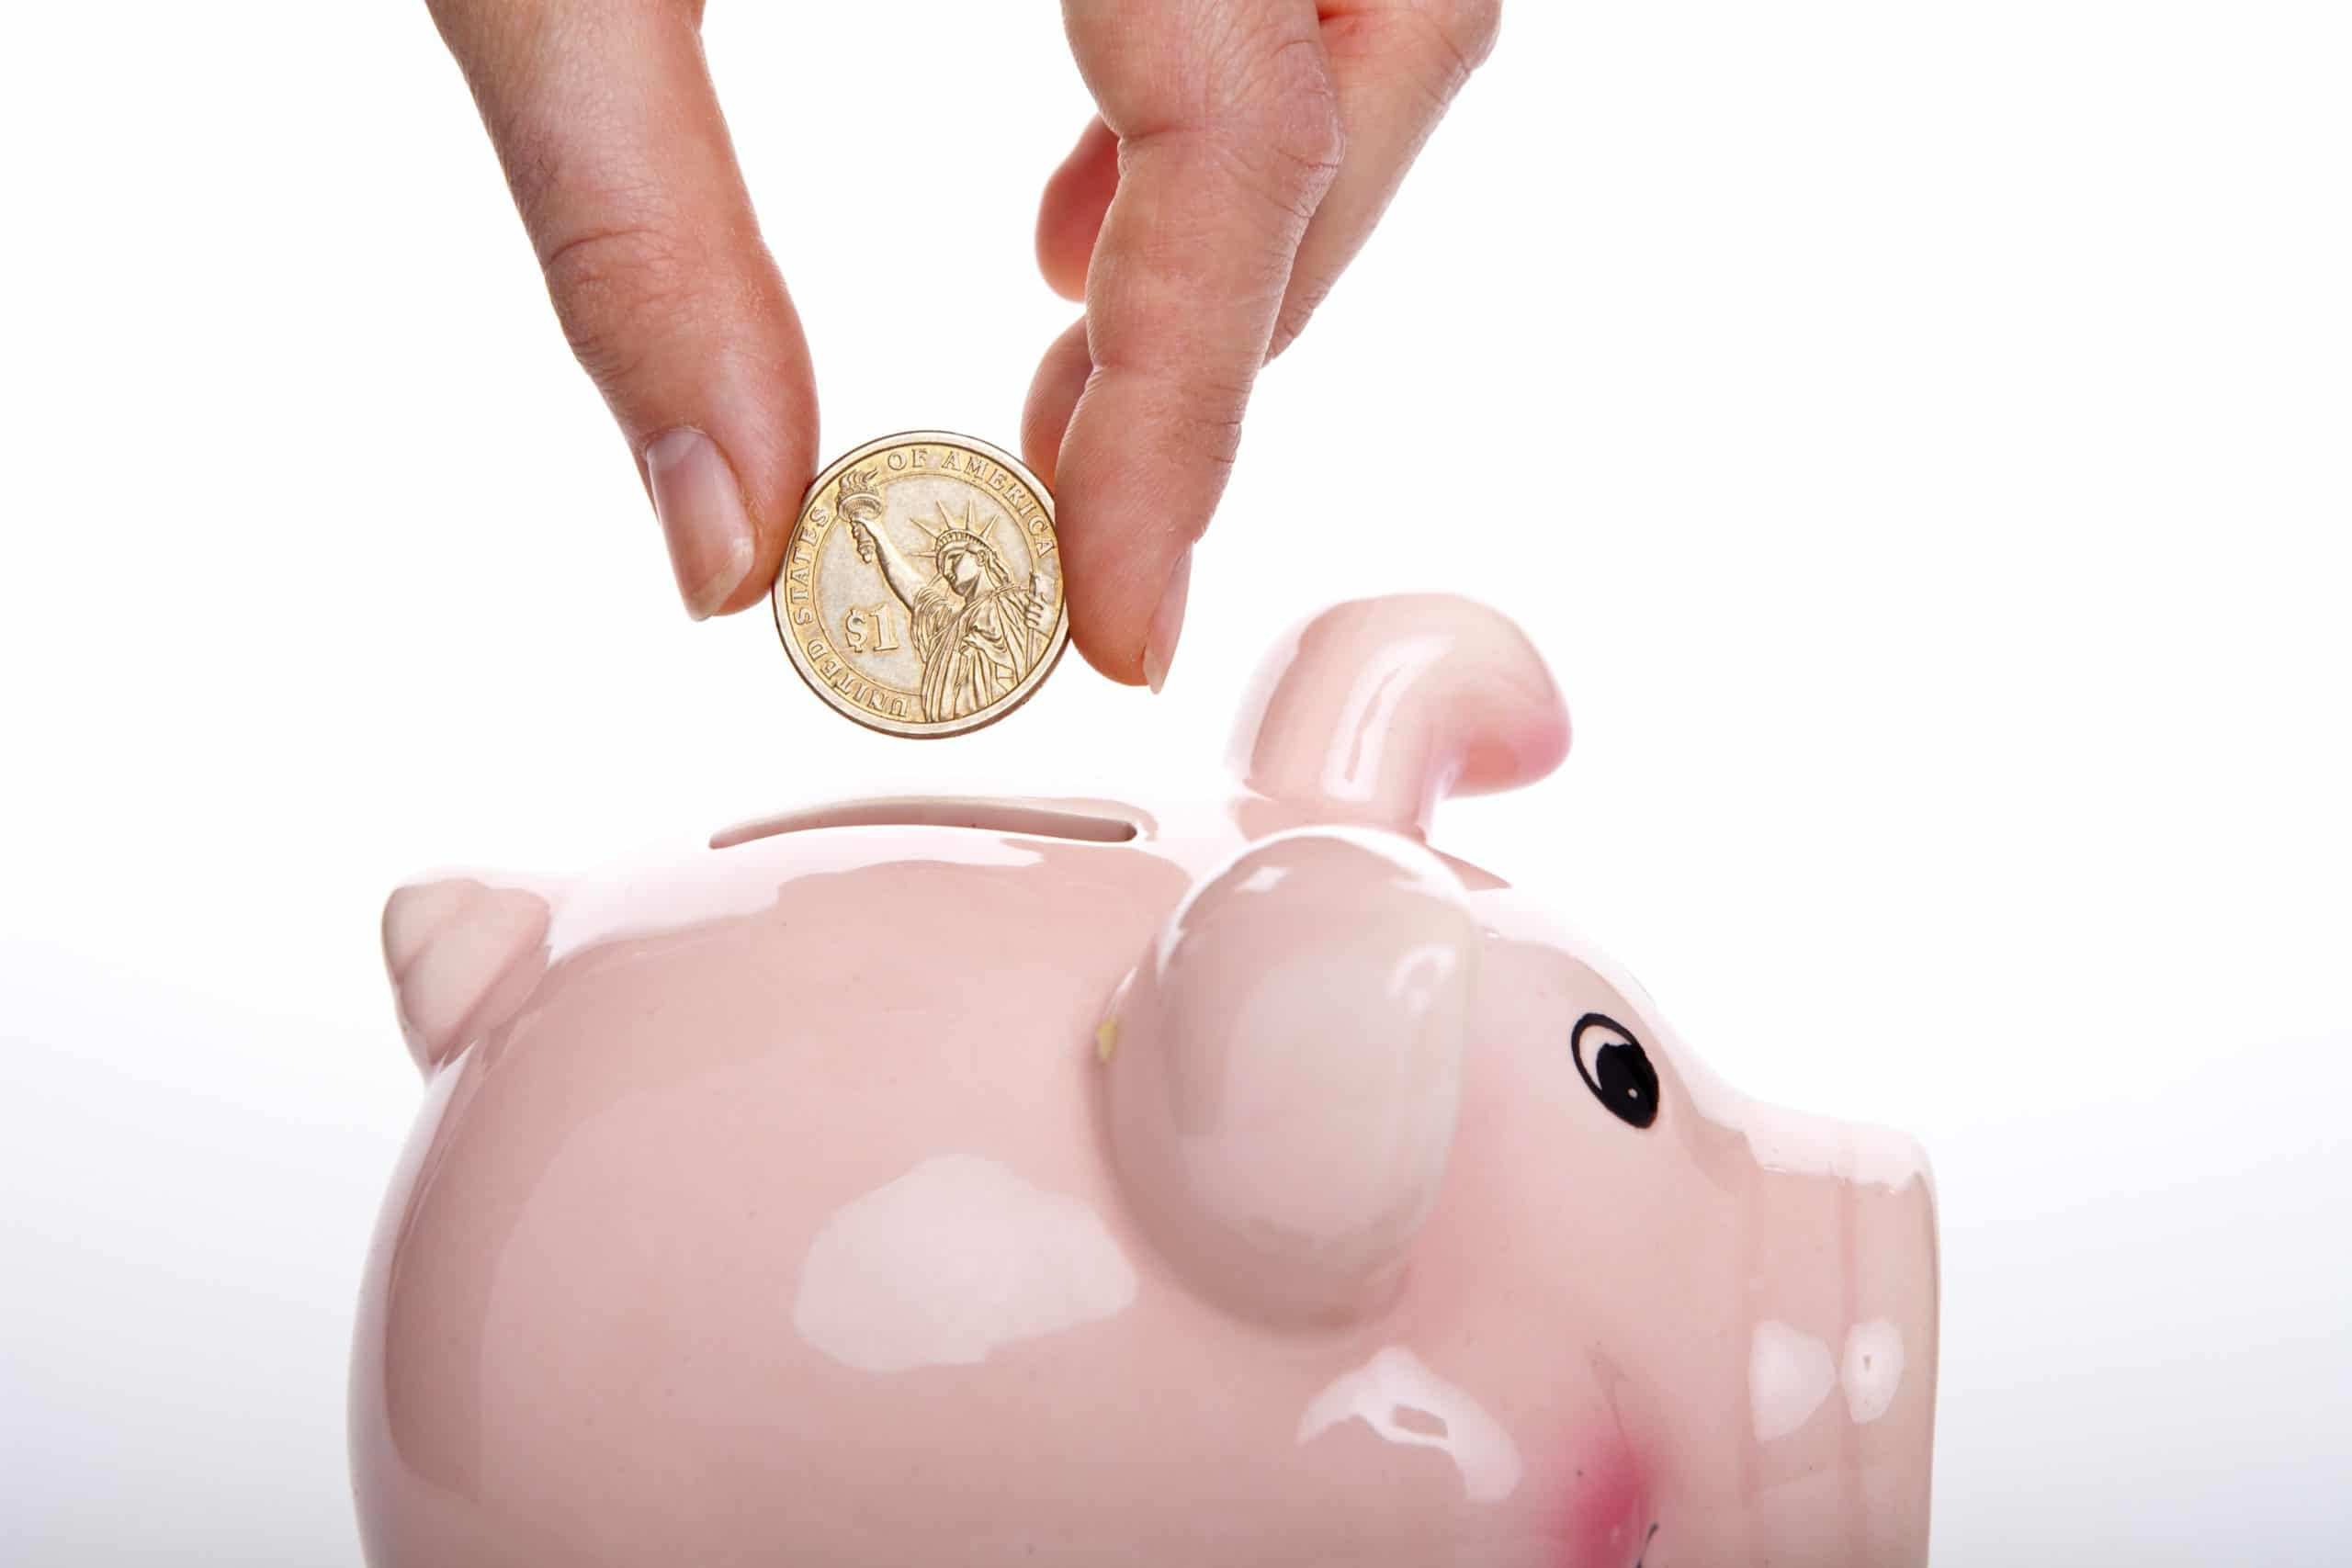 Sinking funds: Start Today with These 5 Steps